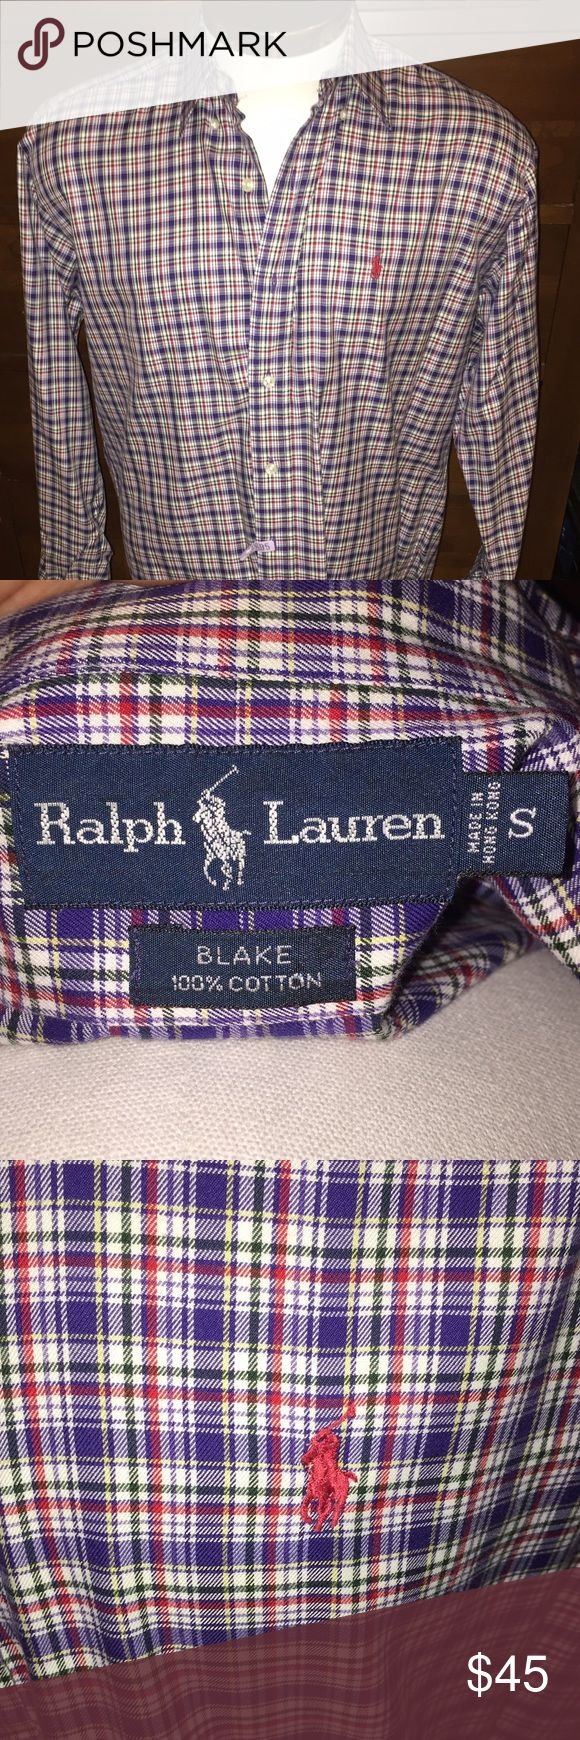 """NWOT Men's Ralph Lauren """"Blake"""" Button Down - S You are looking at a NWOT Men's Ralph Lauren """"Blake"""" style Button Down Shirt in size Small. """"Blake"""" style means it's a very quality thickness, not too thick but you can feel it's not a cheap thin cotton. The color is a Purple, Green, and Red pattern. This is a very soft and very stylish shirt that can be worn year-round! This shirt has just been dry cleaned (the tag can be seen in the pic) If you have any questions please feel free to let me…"""